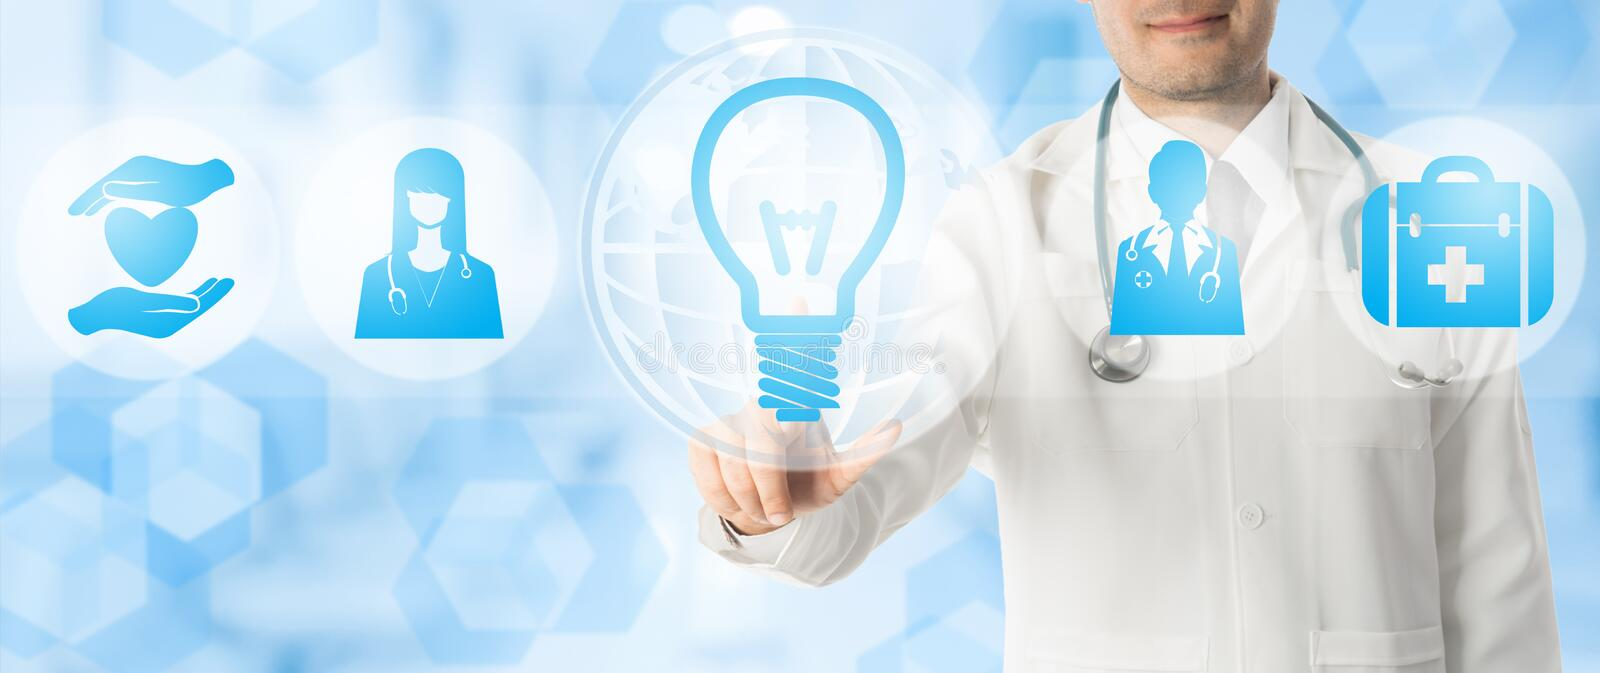 Medical Innovation Concept - Doctor with Lamp Icon royalty free stock photos